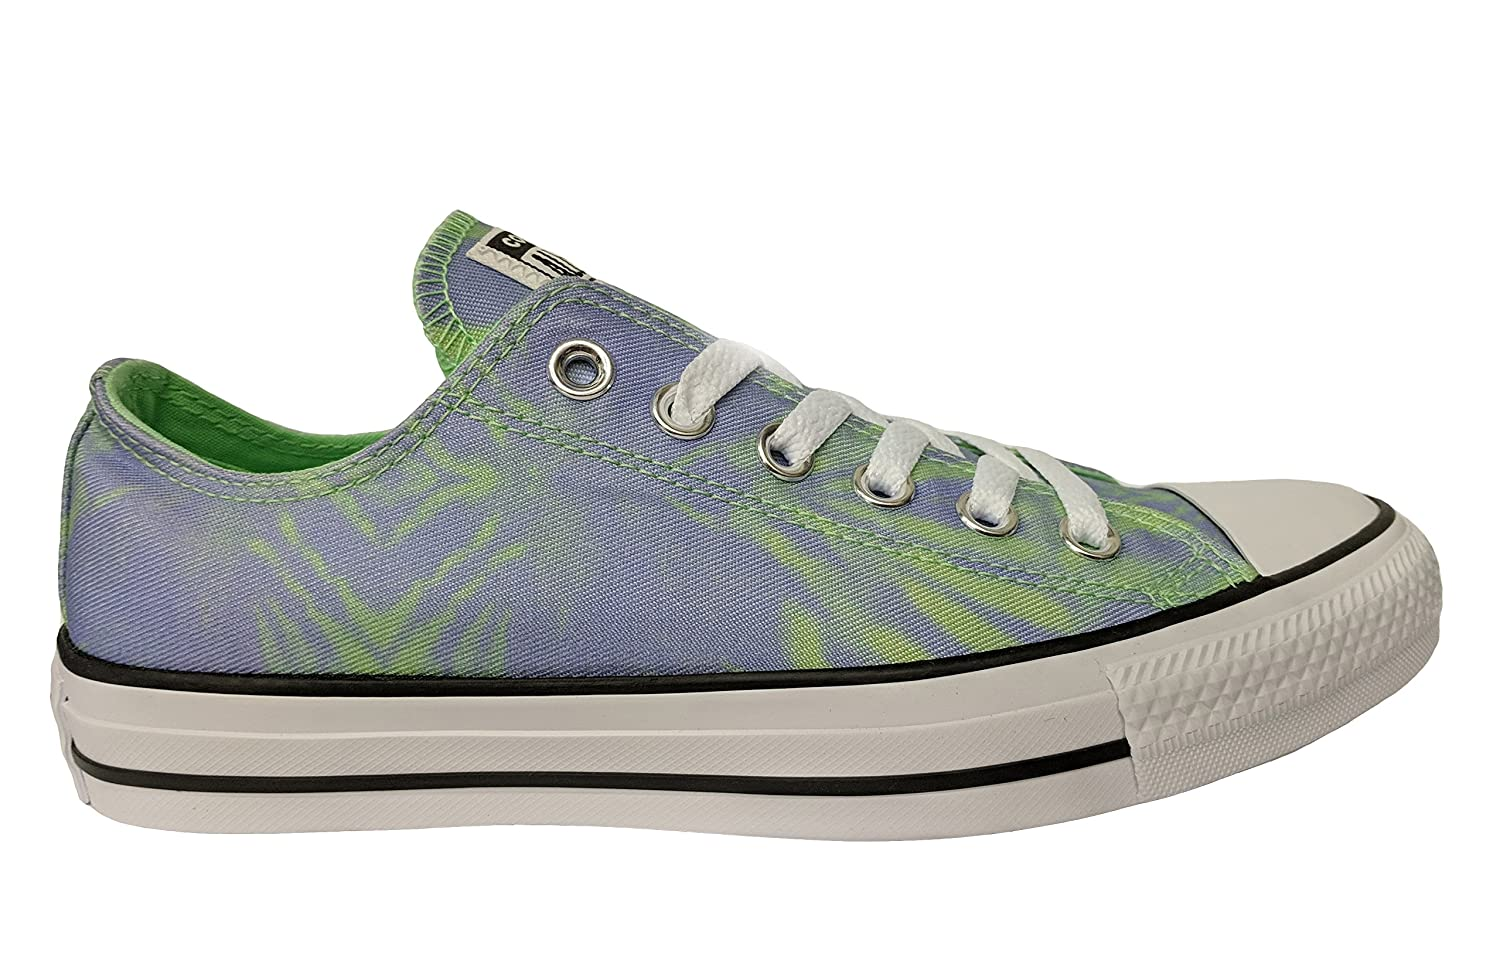 Converse CTAS OX Womens Fashion-Sneakers B076TF7TCD 11.5 Women / 9.5 Men M US|Illusion Green/Twilight Pulse